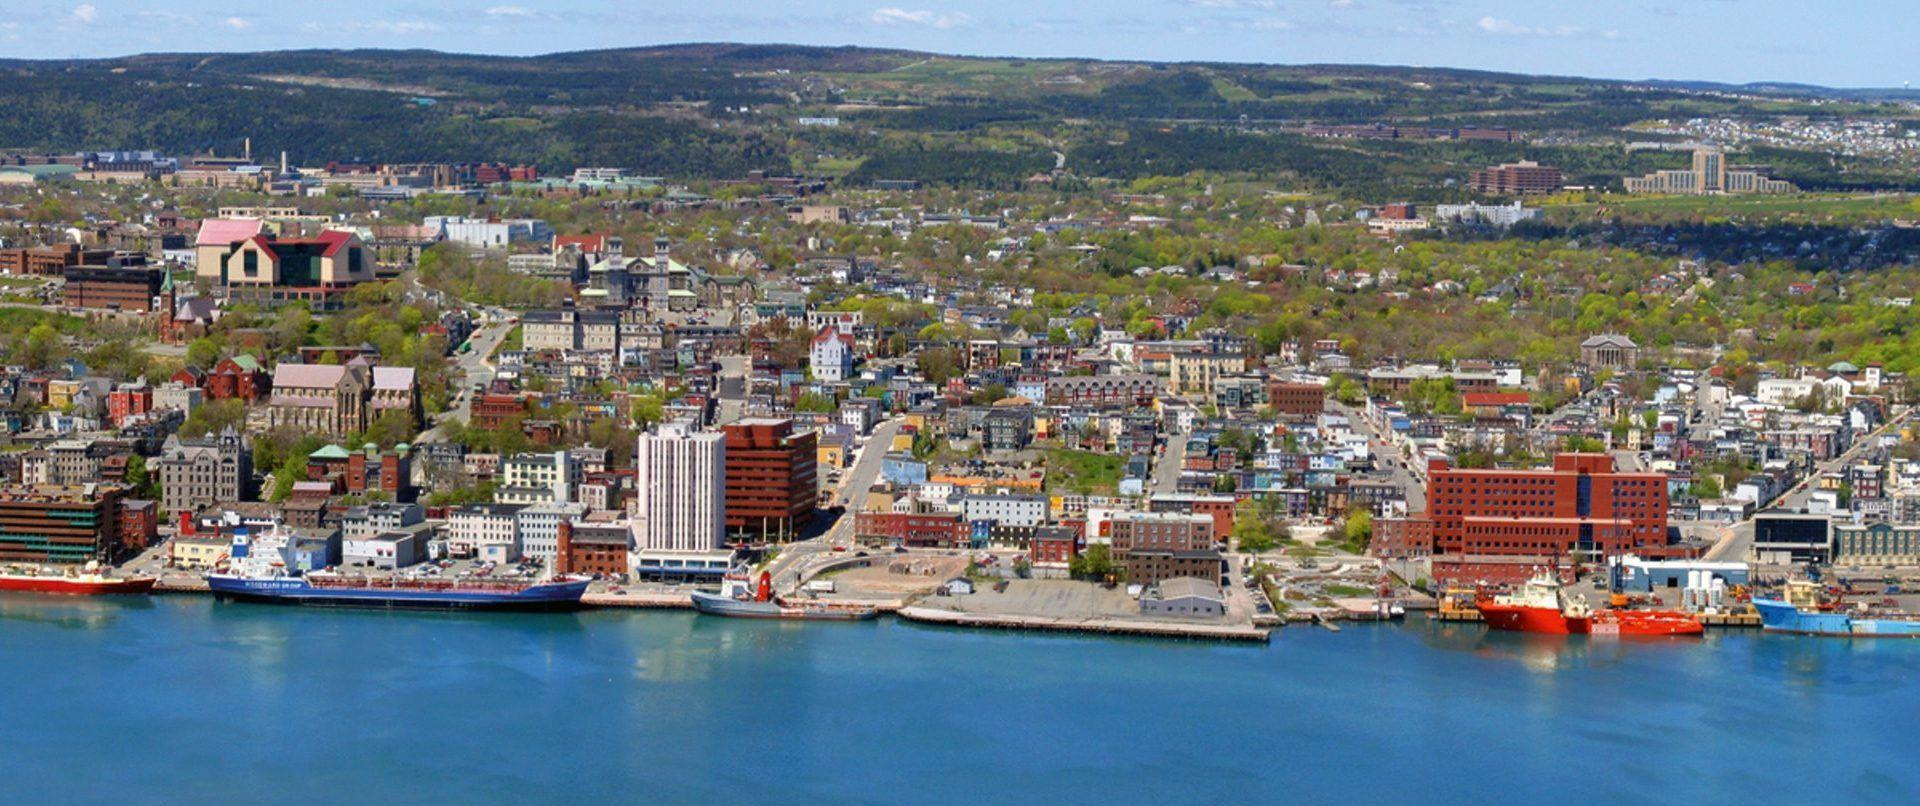 St John Newfoundland Canada Johns Coast Wallpaper For Desktop ...